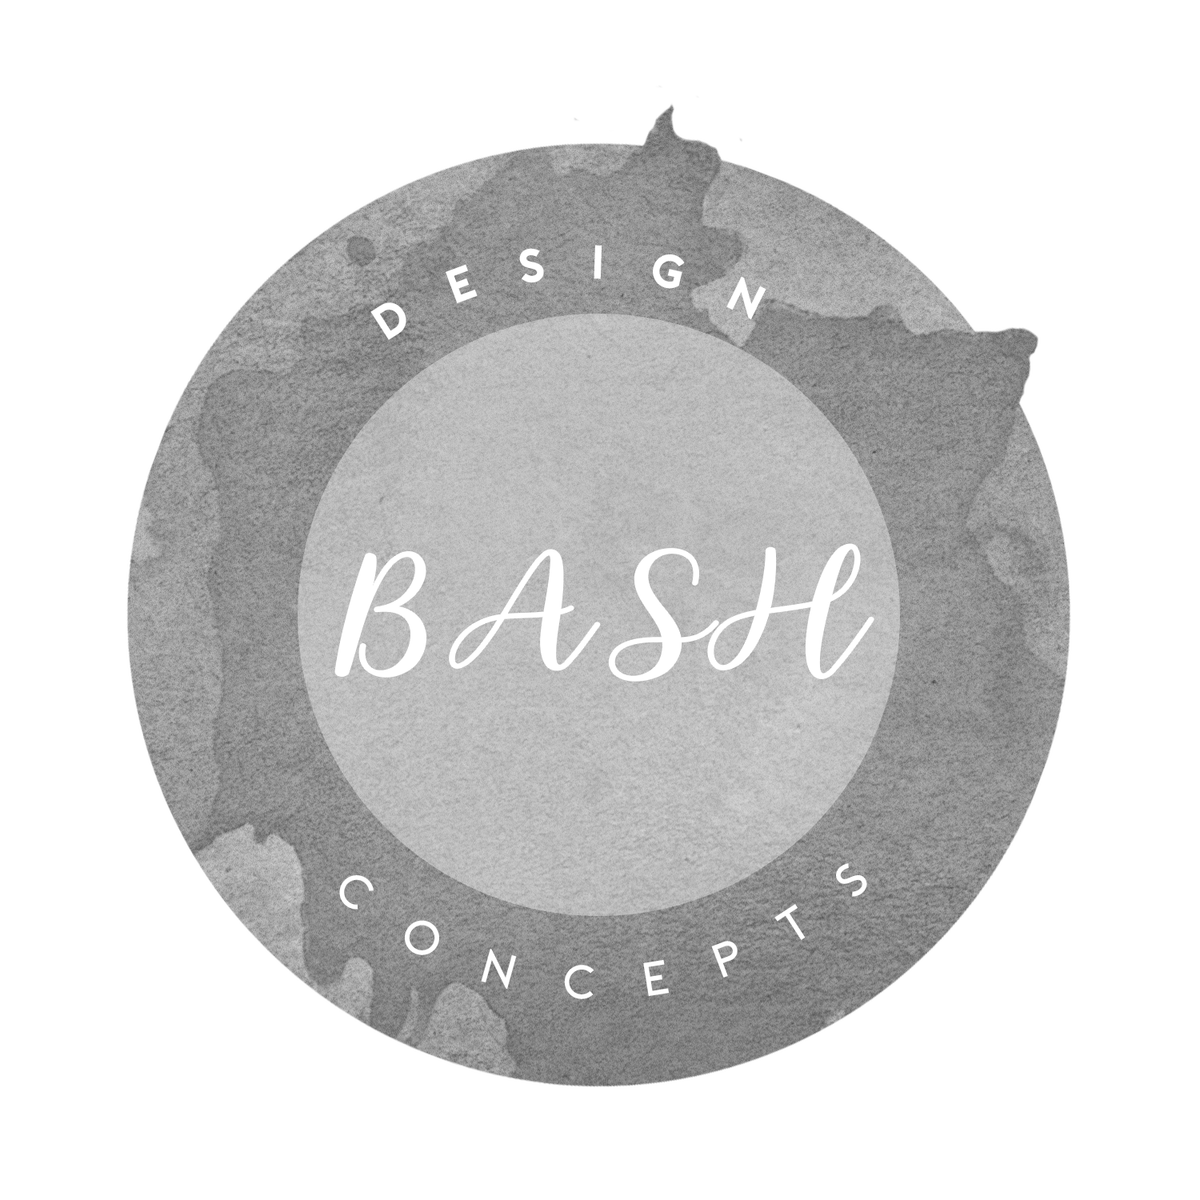 Wedding & Event Design | Event Konzepte & Design in Sachsen